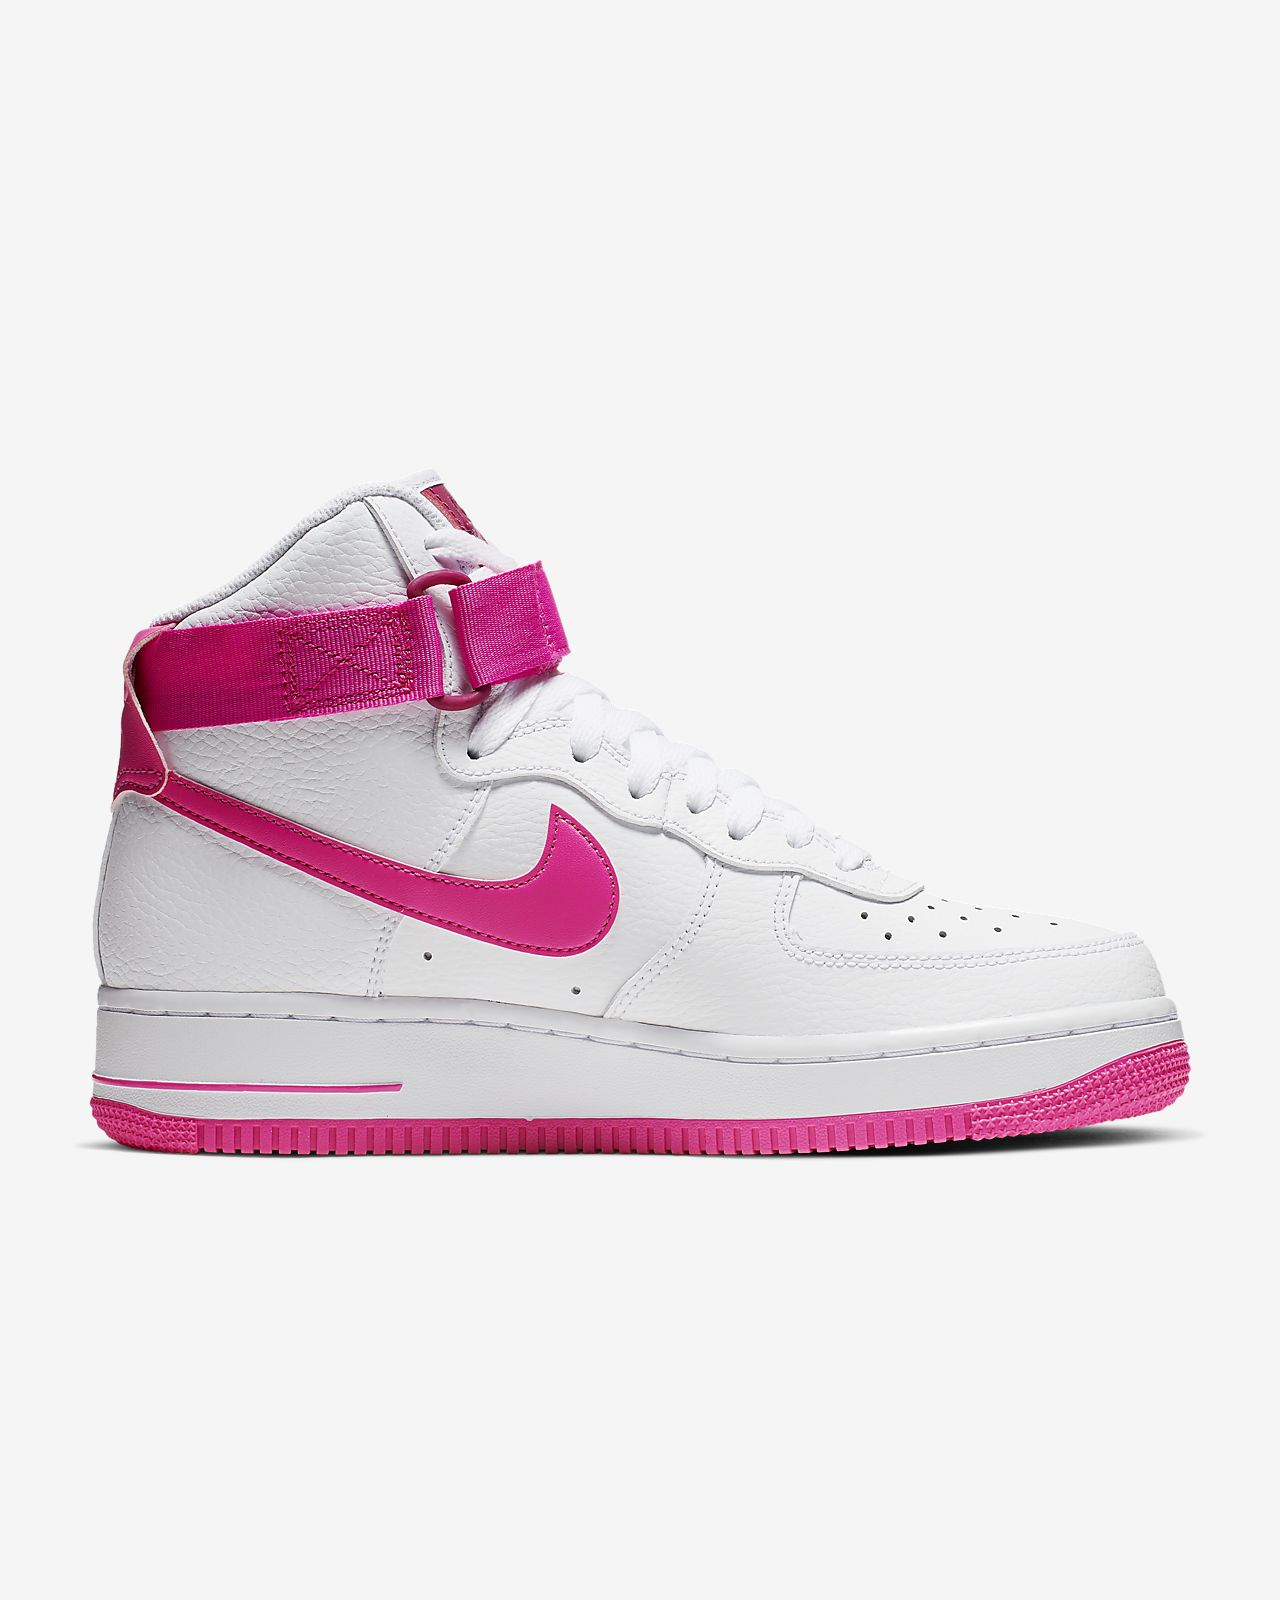 the latest 84c0d 08263 Women s Shoe. Nike Air Force 1 High 08 LE